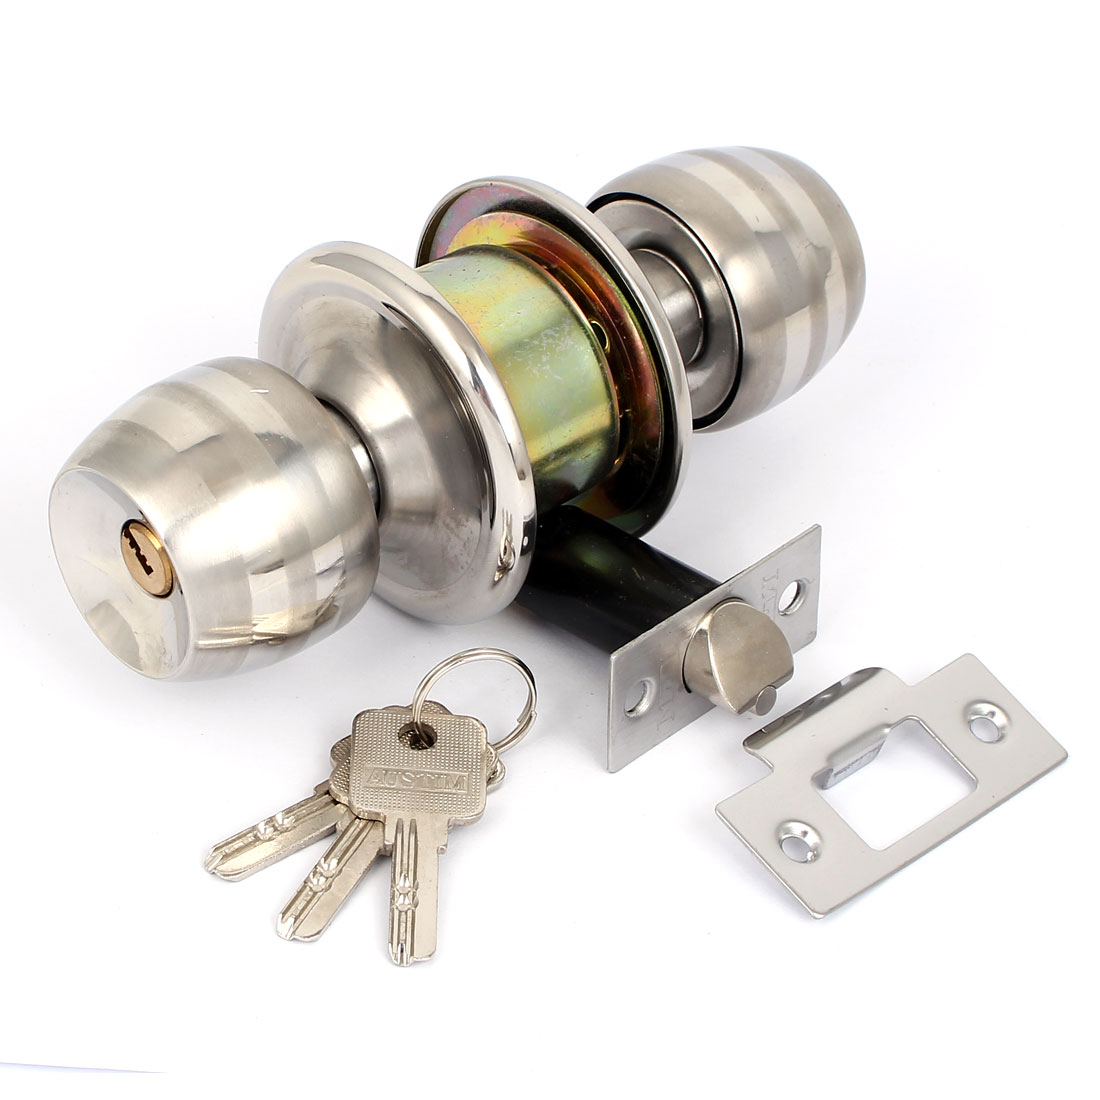 Bedroom Bathroom Stainless Steel Privacy Round Handle Knobs Door Lock Lockset